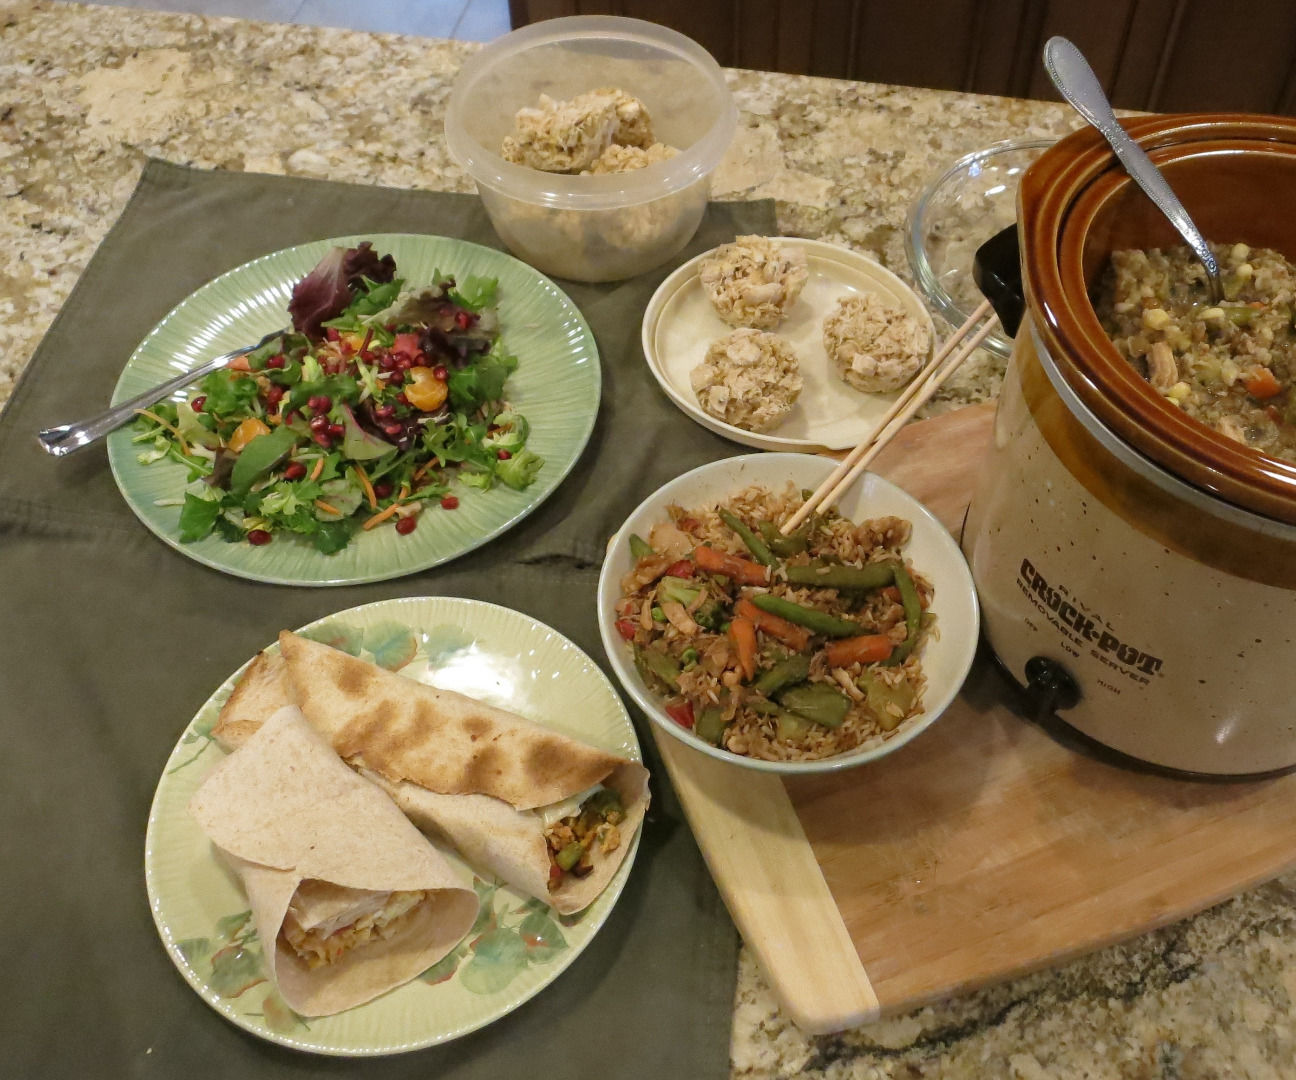 Meal Prep Helpers - Soup, Sandwiches, Stir-Fry, Salads & More